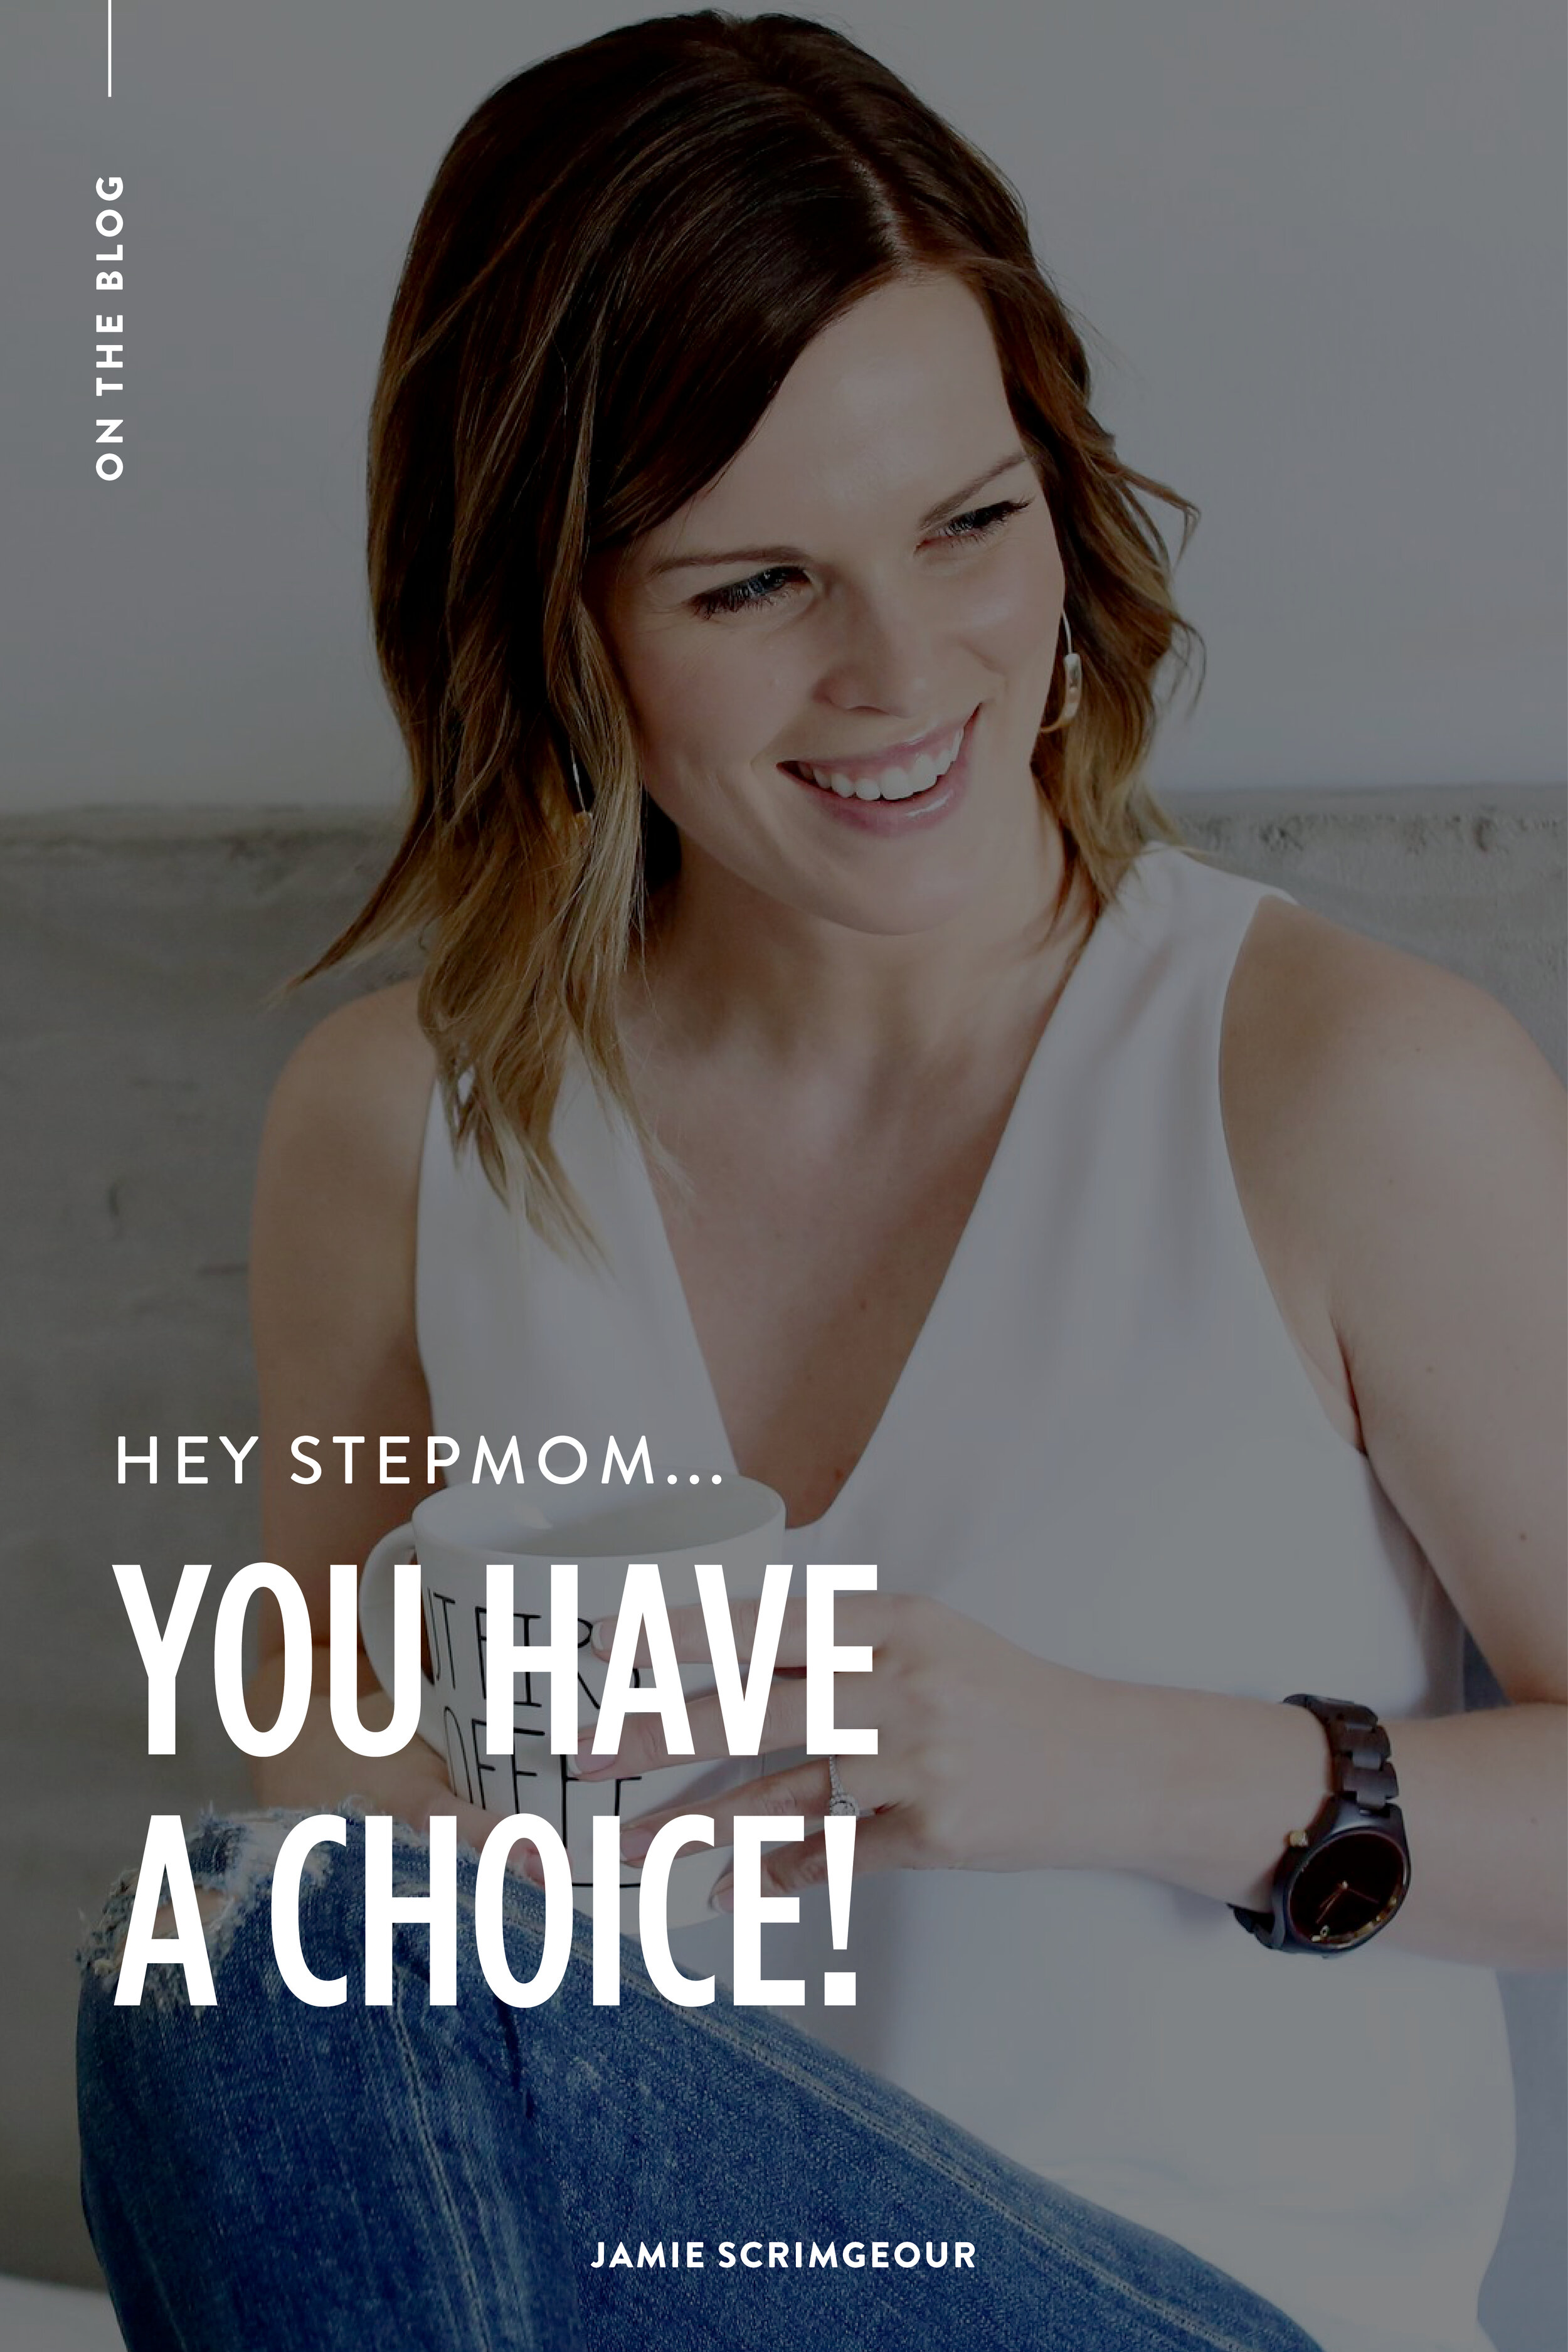 Hey Stepmom, You Have A Choice - Stepmom Support from Jamie Scrimgeour